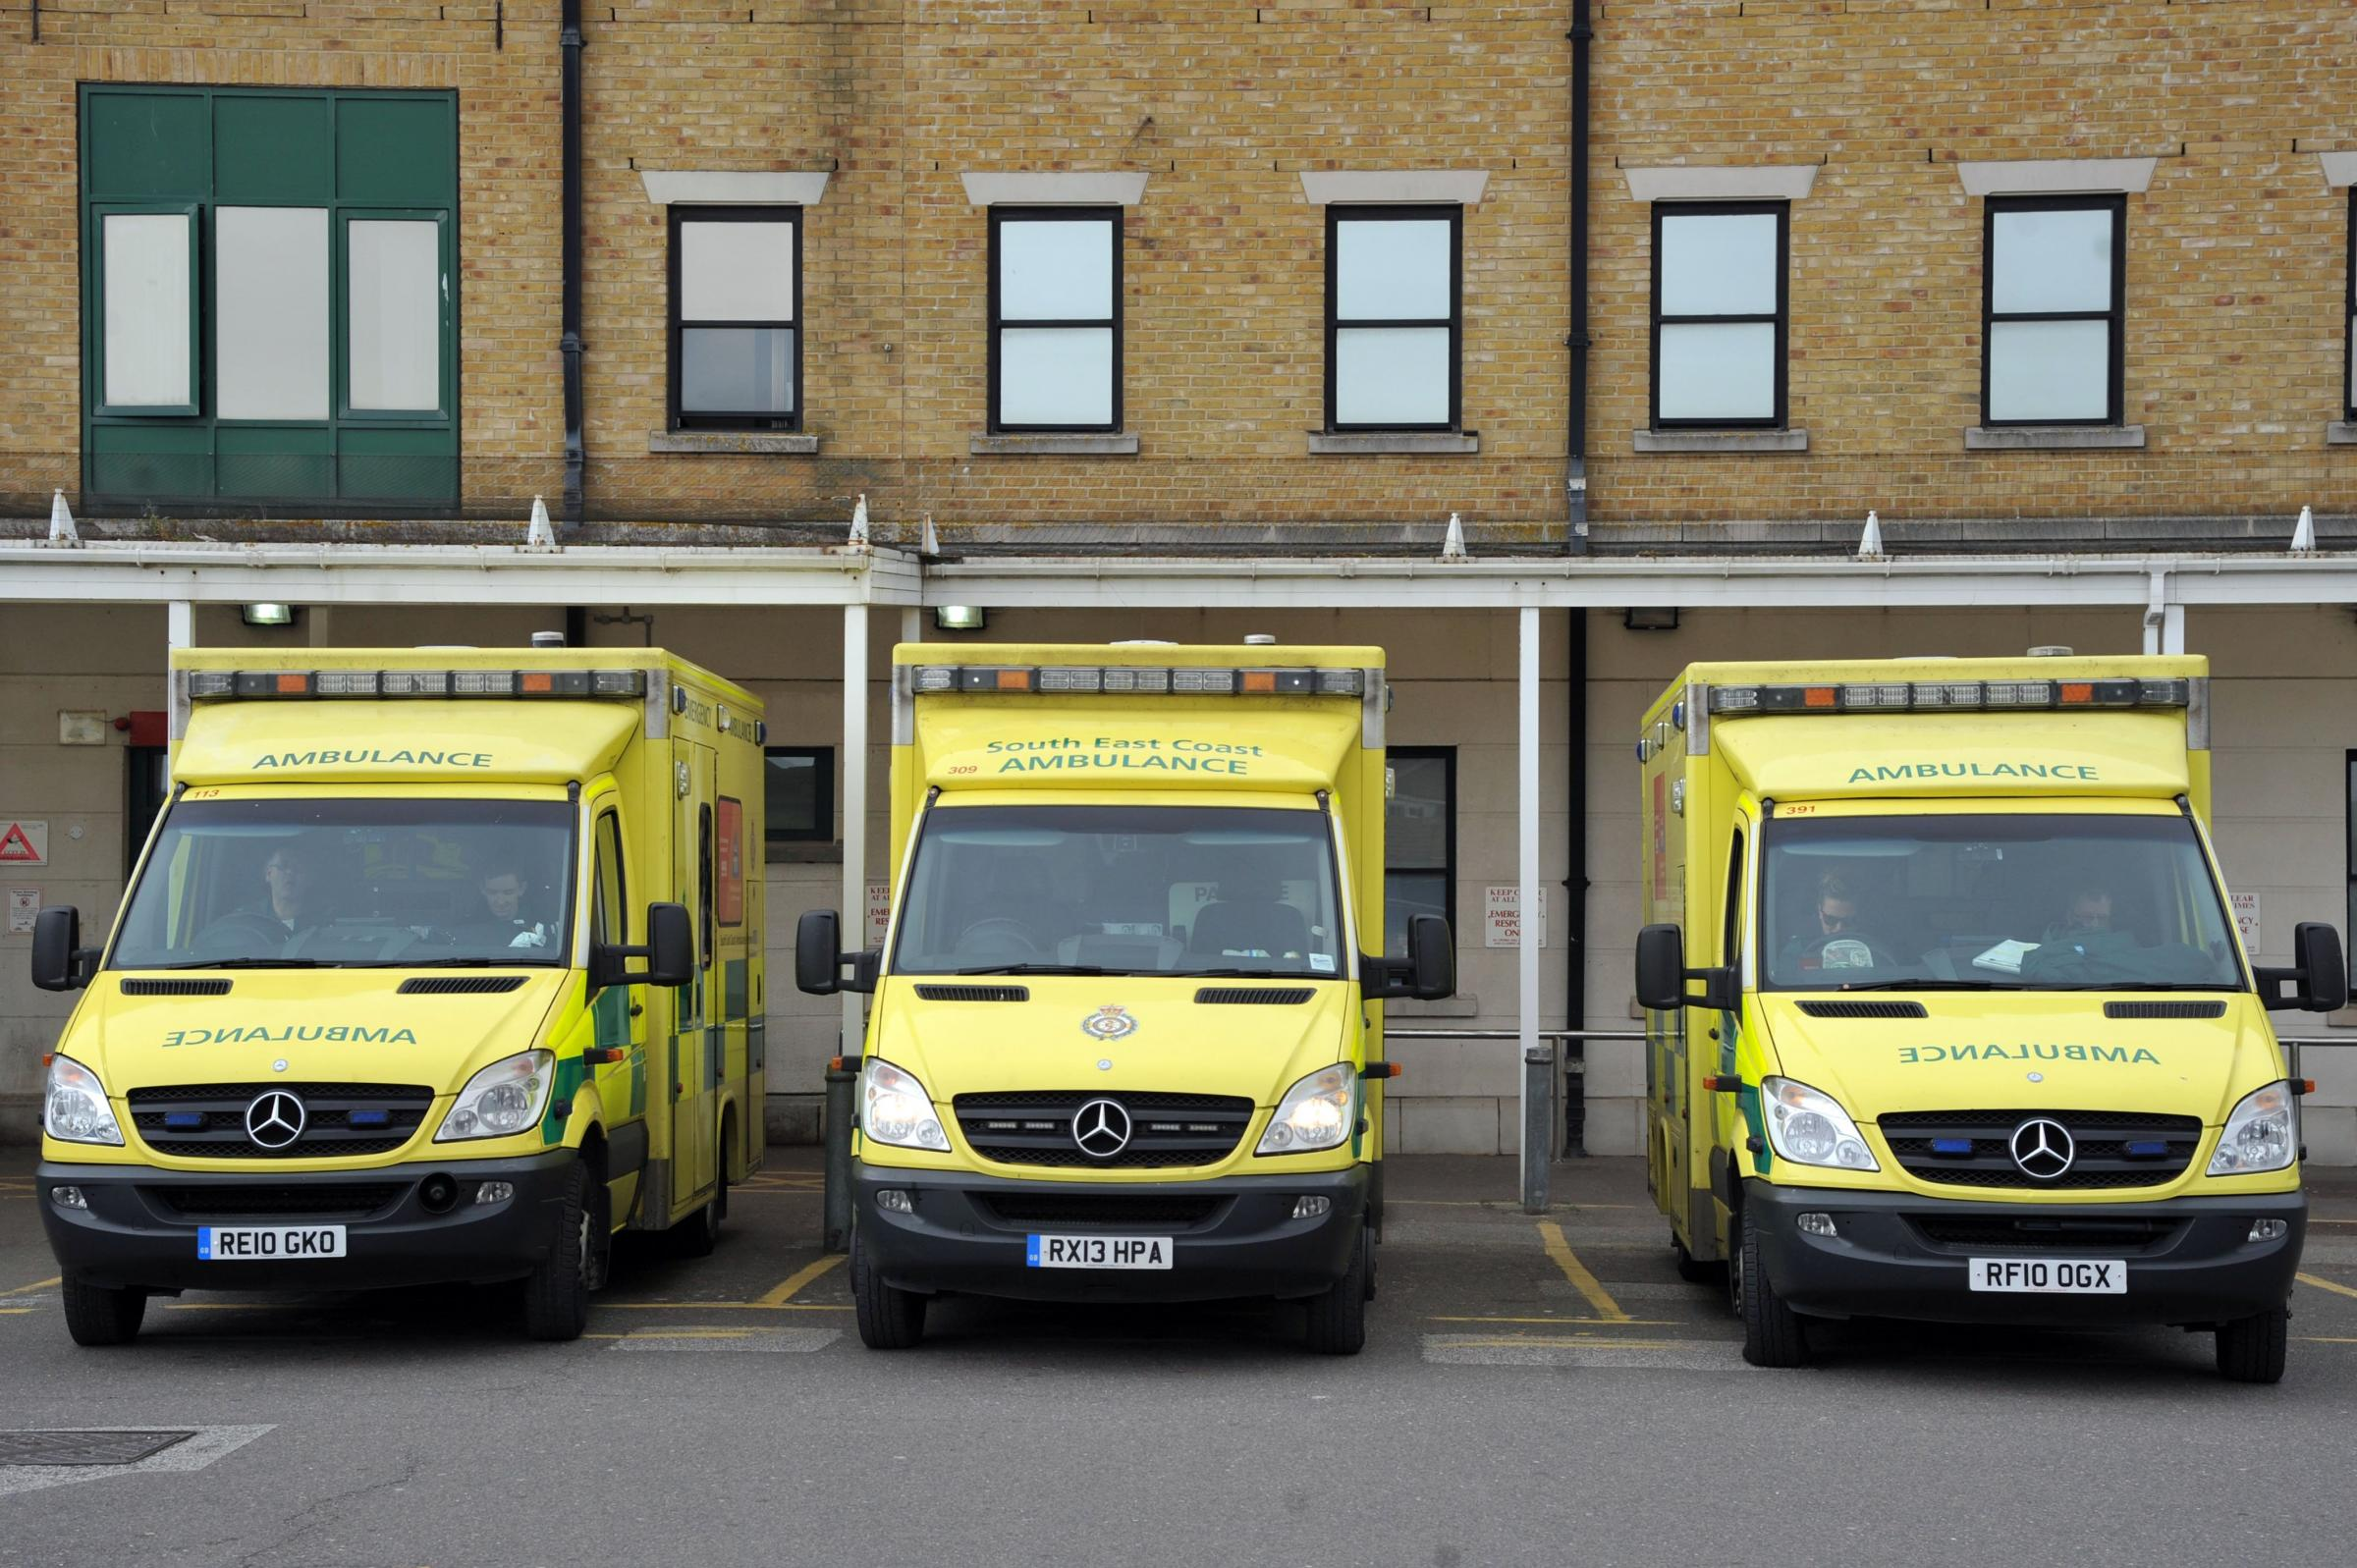 Ambulance outside the A&E department at the Royal Sussex County Hospital in Brighton